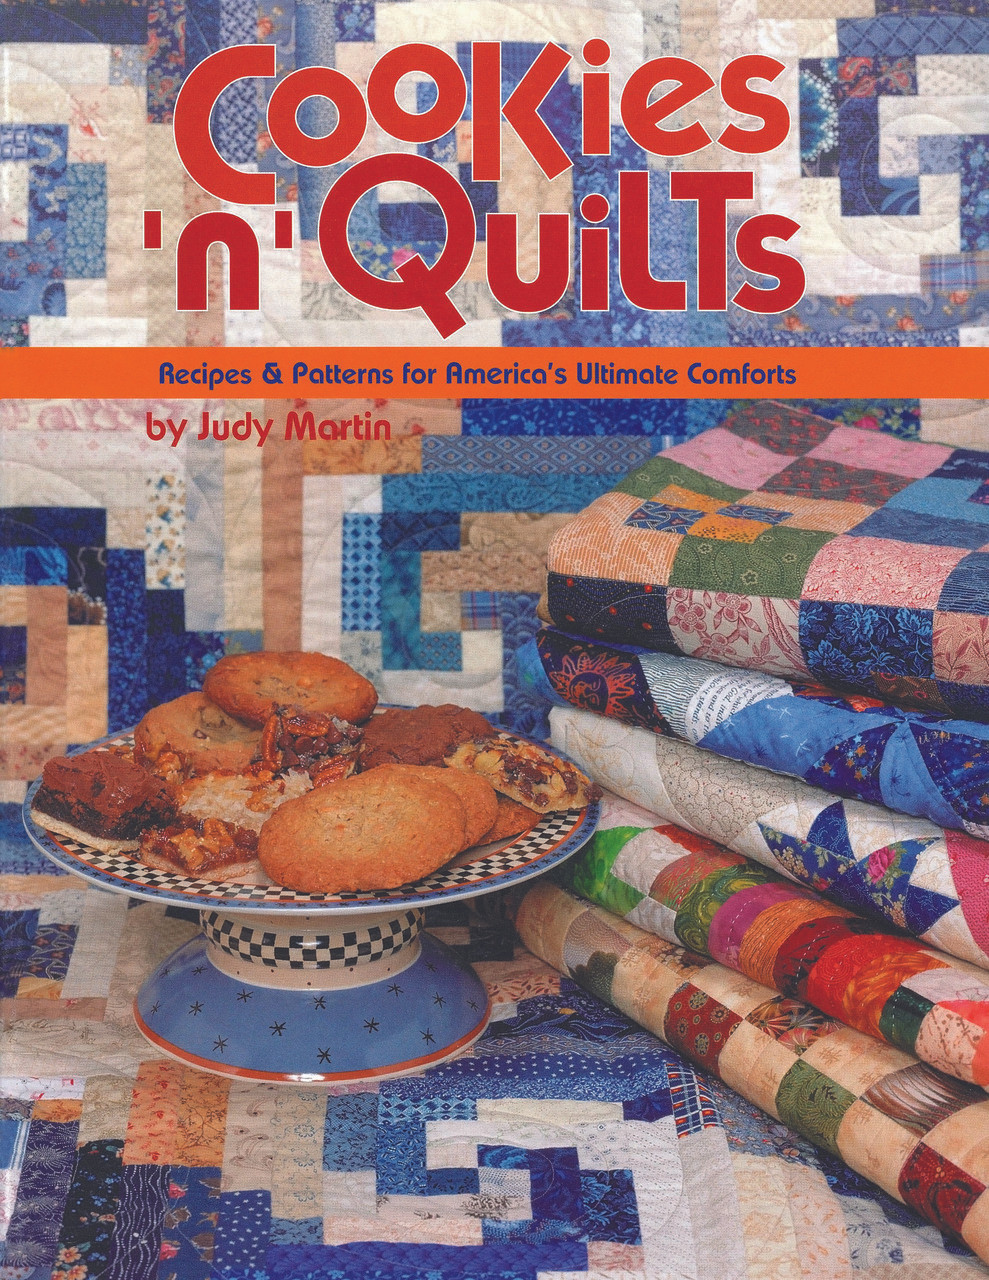 8 complete quilt patterns and 10 cookie and bar recipes (plus 1 nutty variation and 1 frosting recipe). Cookies and quilts have long been associated with warmth and comfort, with reassurance and love. So it's only natural that Judy Martin bring these two icons of the happy American home together in one delicious book. Cookies 'n' Quilts has everything you need to make perfect quilts: color photos and illustrations, complete color-coded rotary cutting instructions, full-size templates, and quilting motifs. And because the patterns come from Judy Martin, you know they are completely accurate. All the quilts in the book superimpose one quilt pattern over another. Whether she is putting flowers over an Irish Chain or introducing a star into another star, she is combining traditional elements in unique and exciting ways.